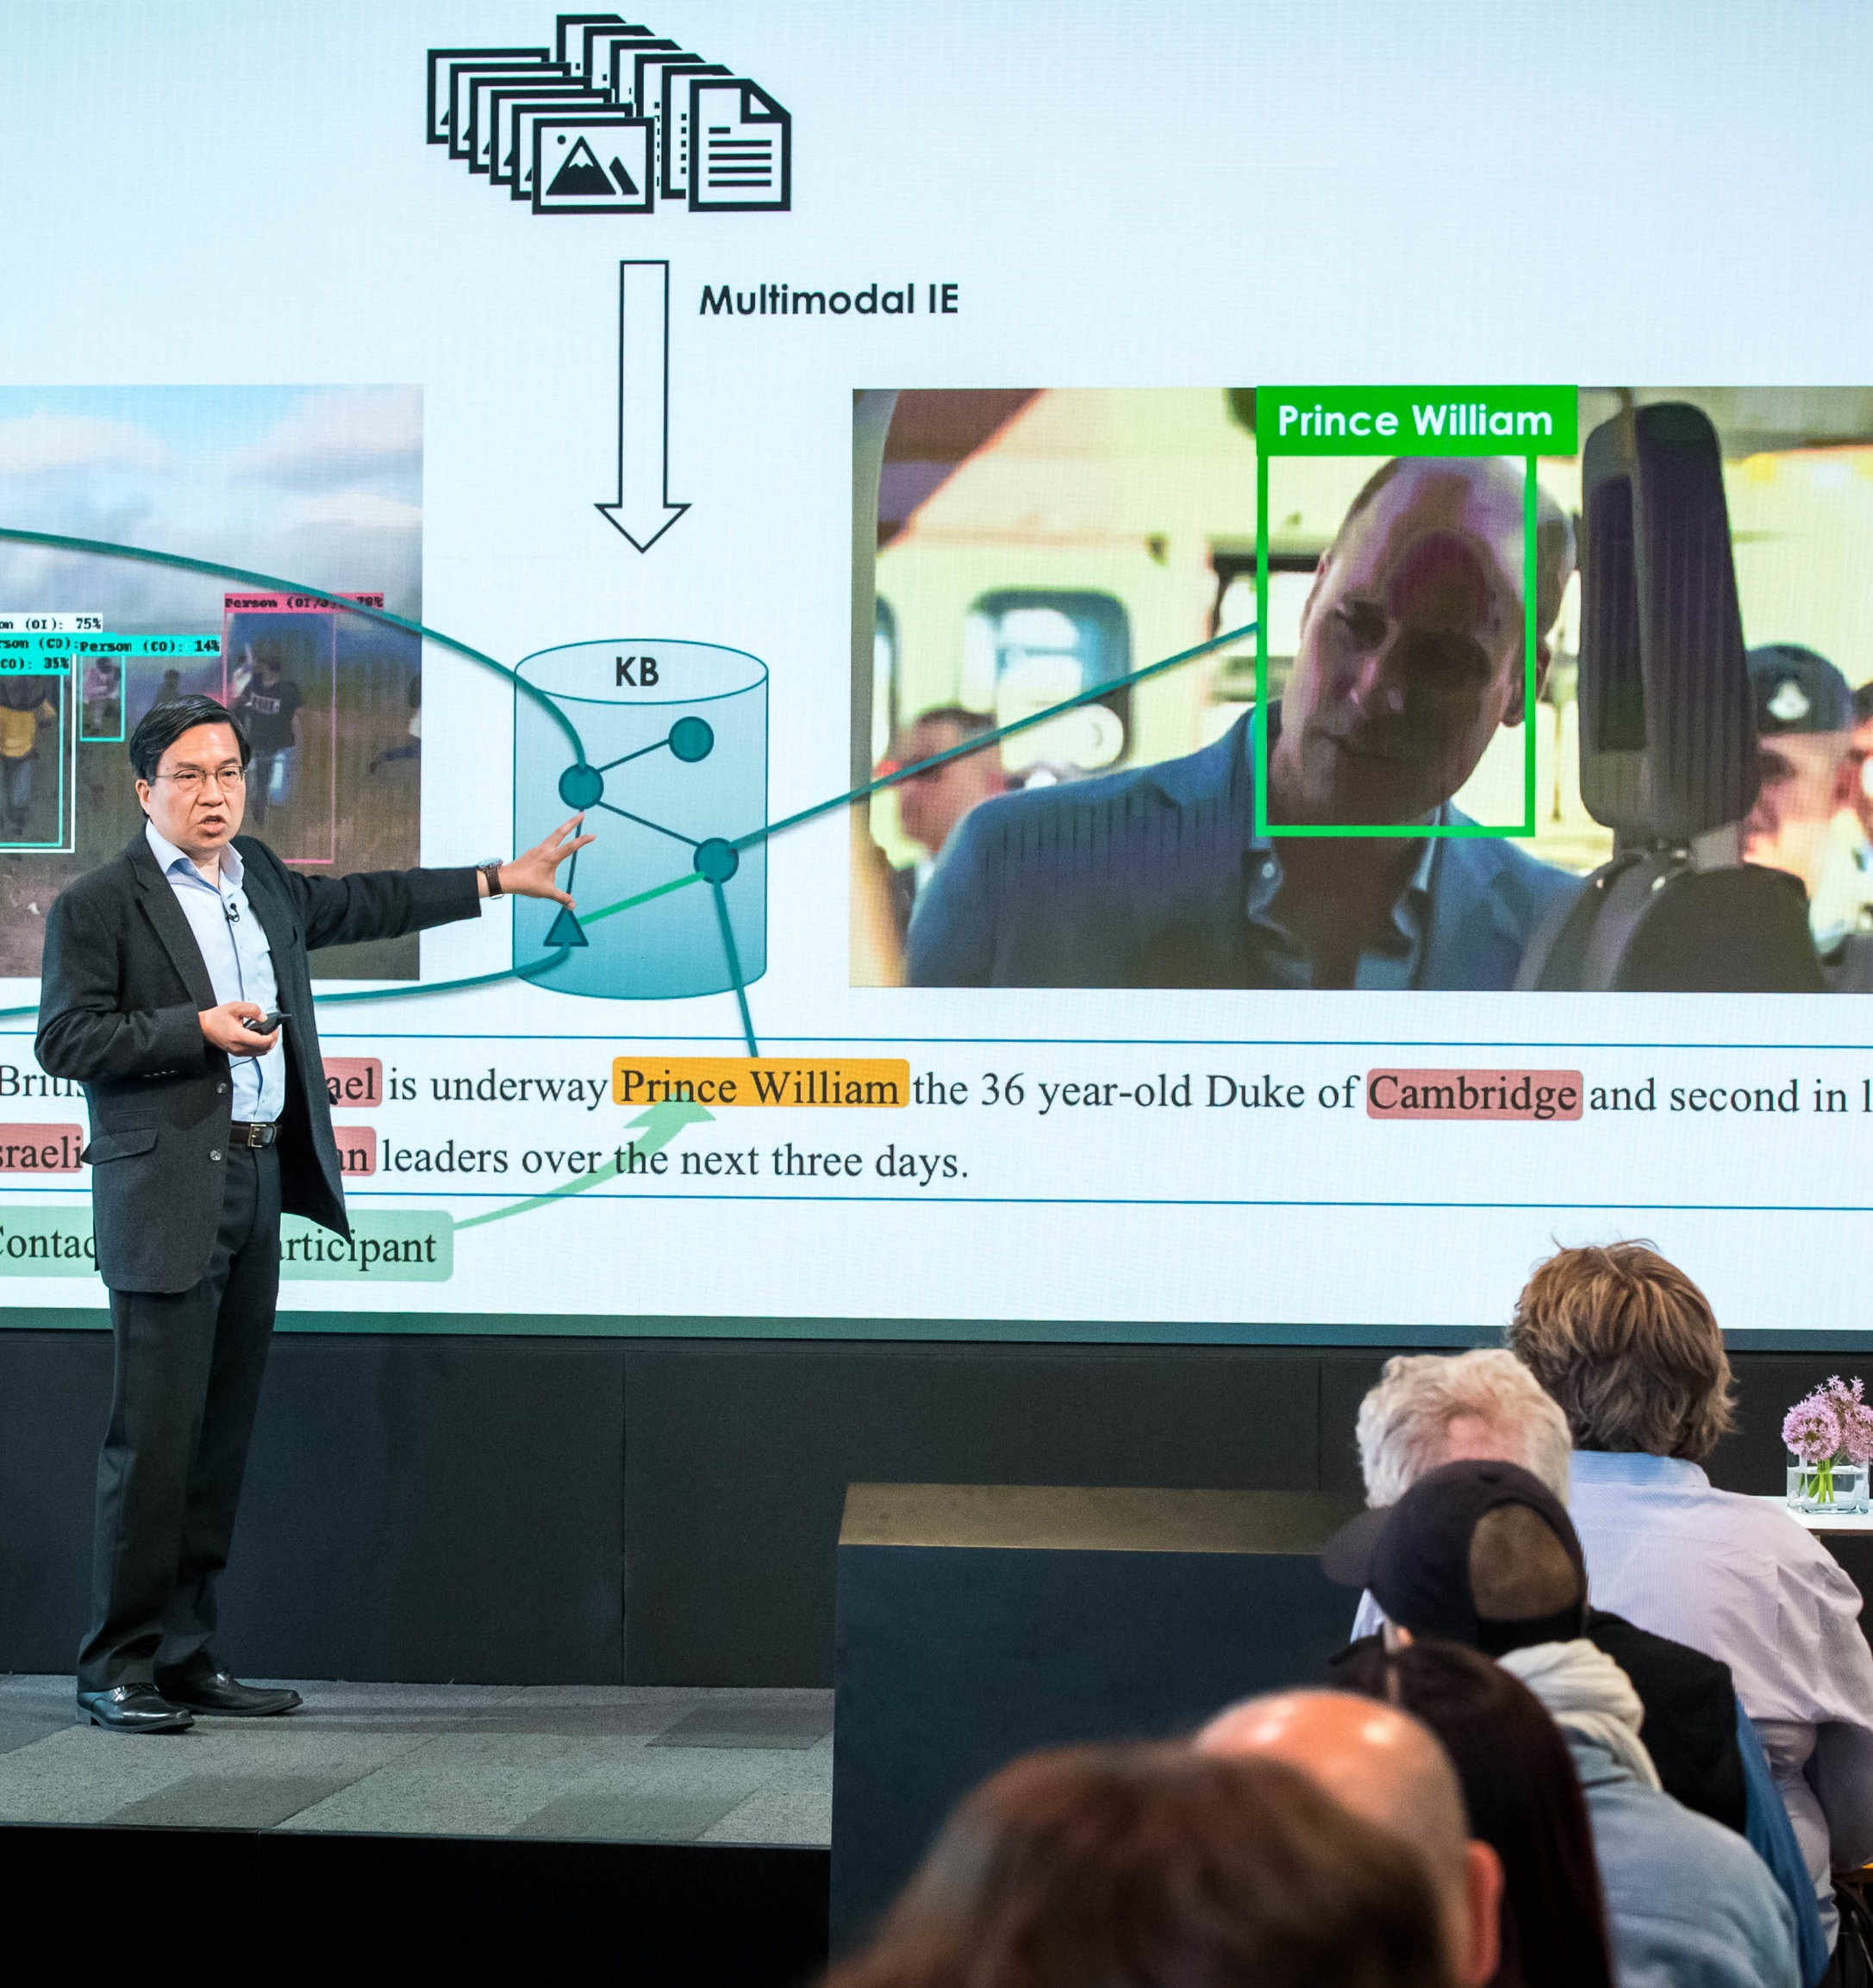 FROM FOOTAGE TO KNOWLEDGE: NEWS STORY UNDERSTANDING FROM RAW VIDEO WITH AI - Columbia University & Rensselaer Polytechnic Institute (RPI). Supported by HearstTeam Members: Shih-Fu Chang, Alireza Zareian, and Spencer WhiteheadThe team developed an AI tool to process raw video footage of news stories. The resulting data and structured database contain comprehensive information around a story, including events, entities, and their relationships. Applications include video editing, search, summarization and more. Additional team members: Manling Li and Heng Ji.